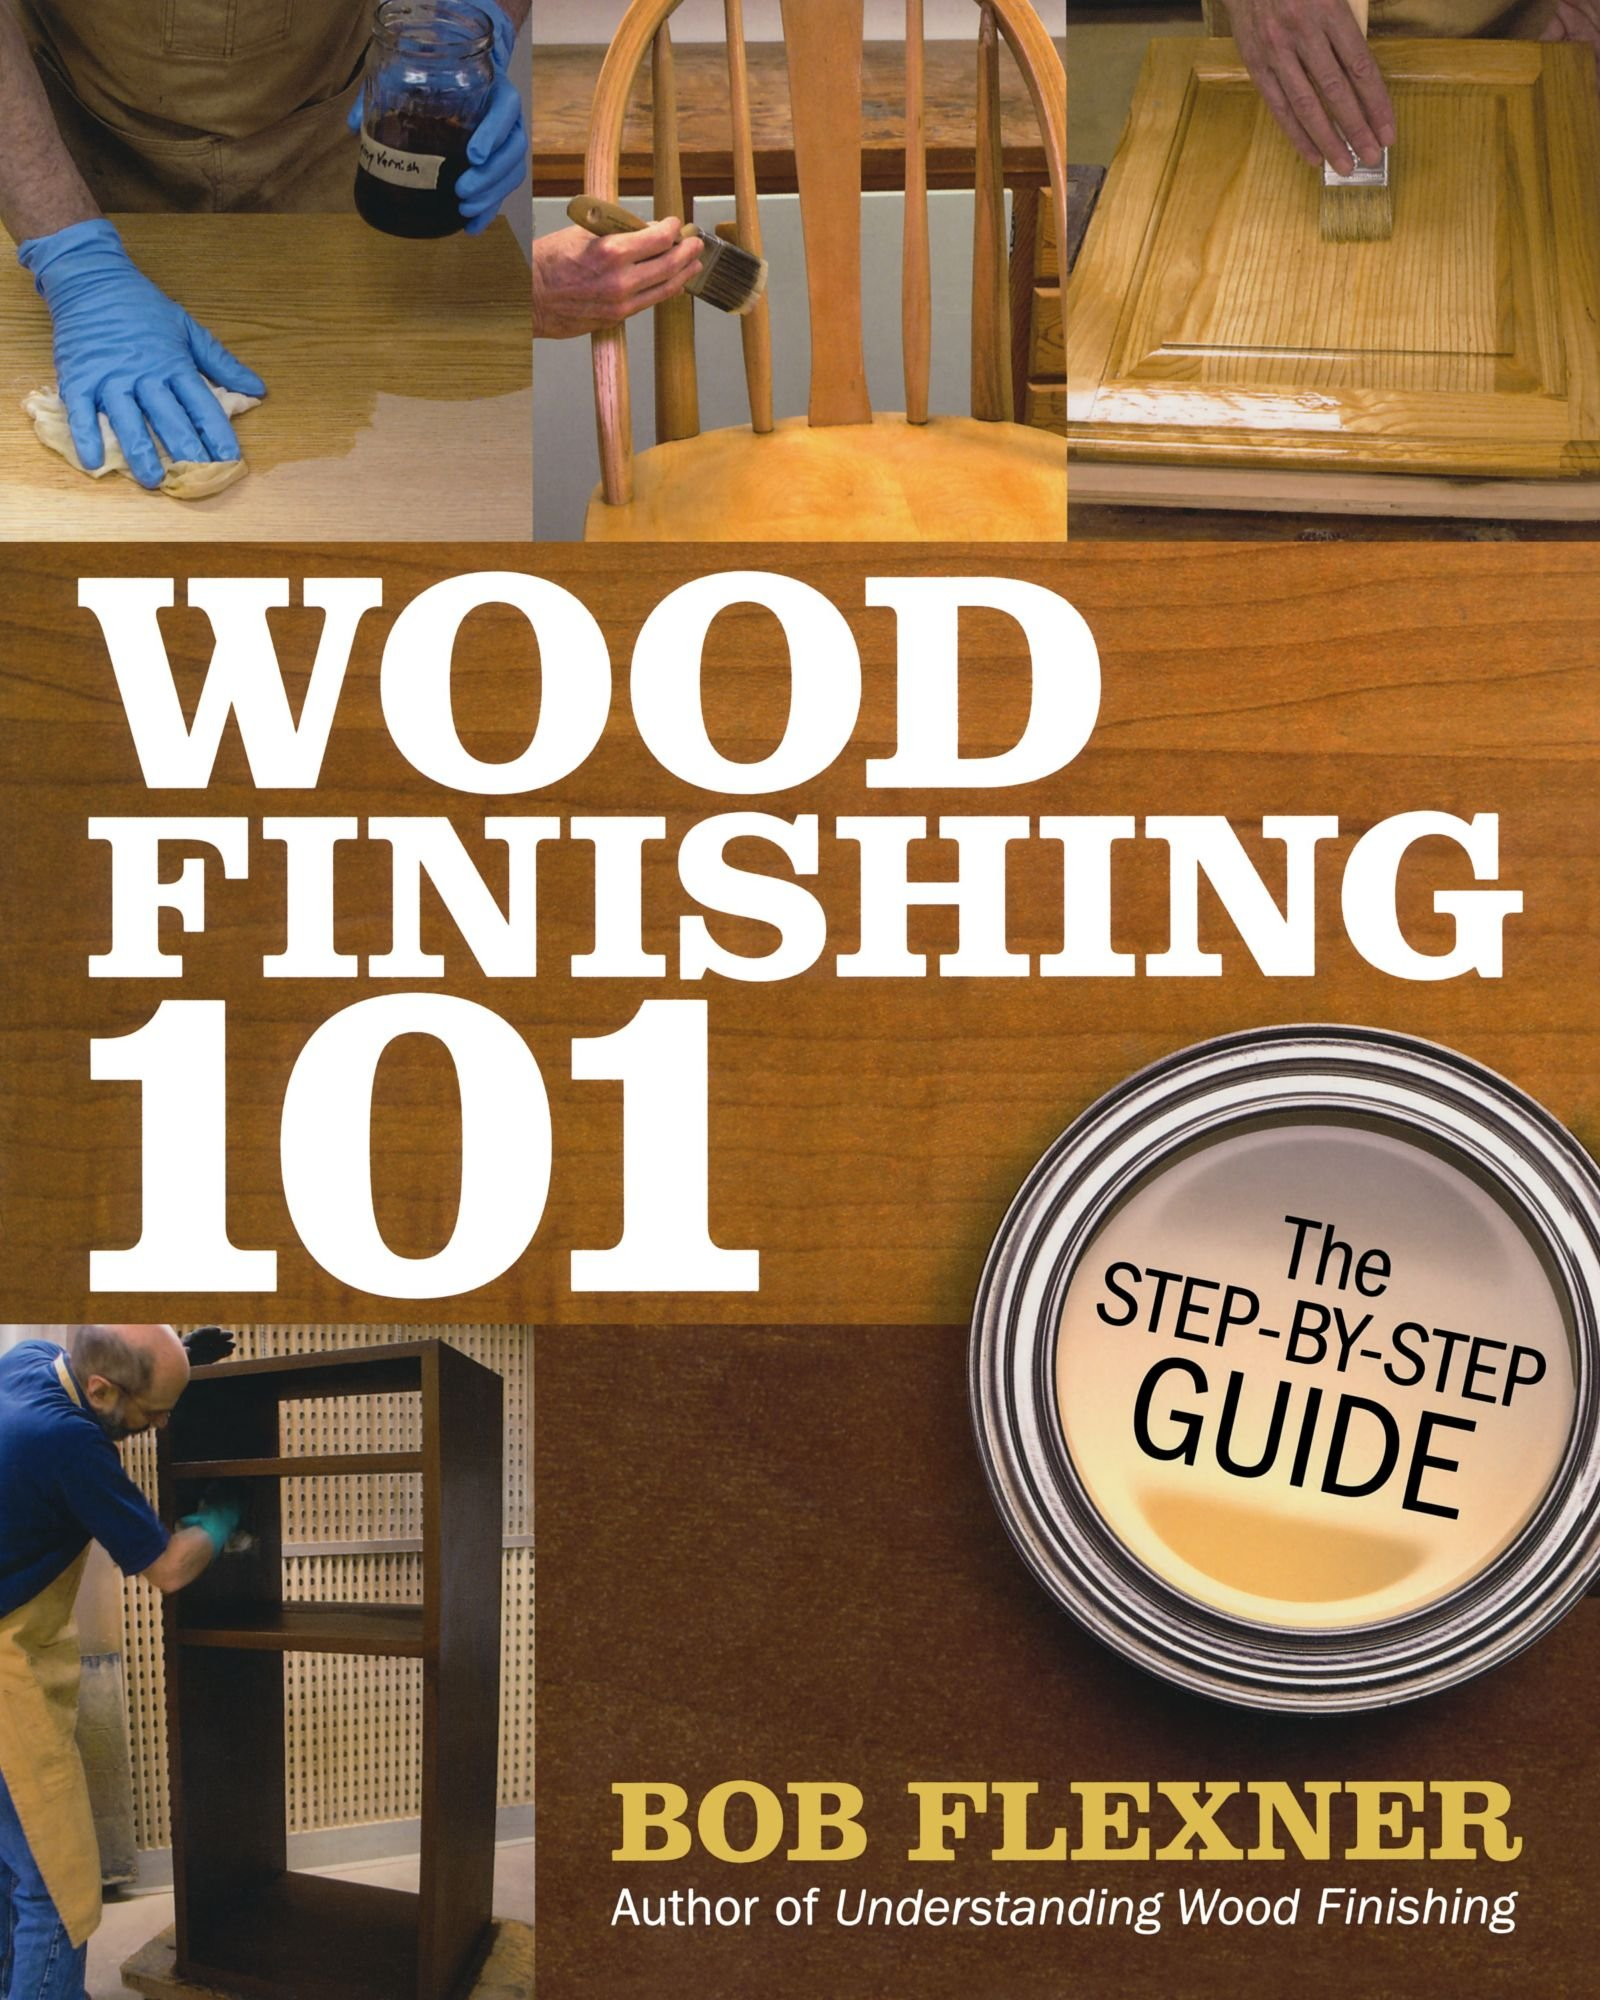 Wood finishing 101 the step by step guide bob flexner wood finishing 101 the step by step guide bob flexner 0035313650536 amazon books fandeluxe Image collections